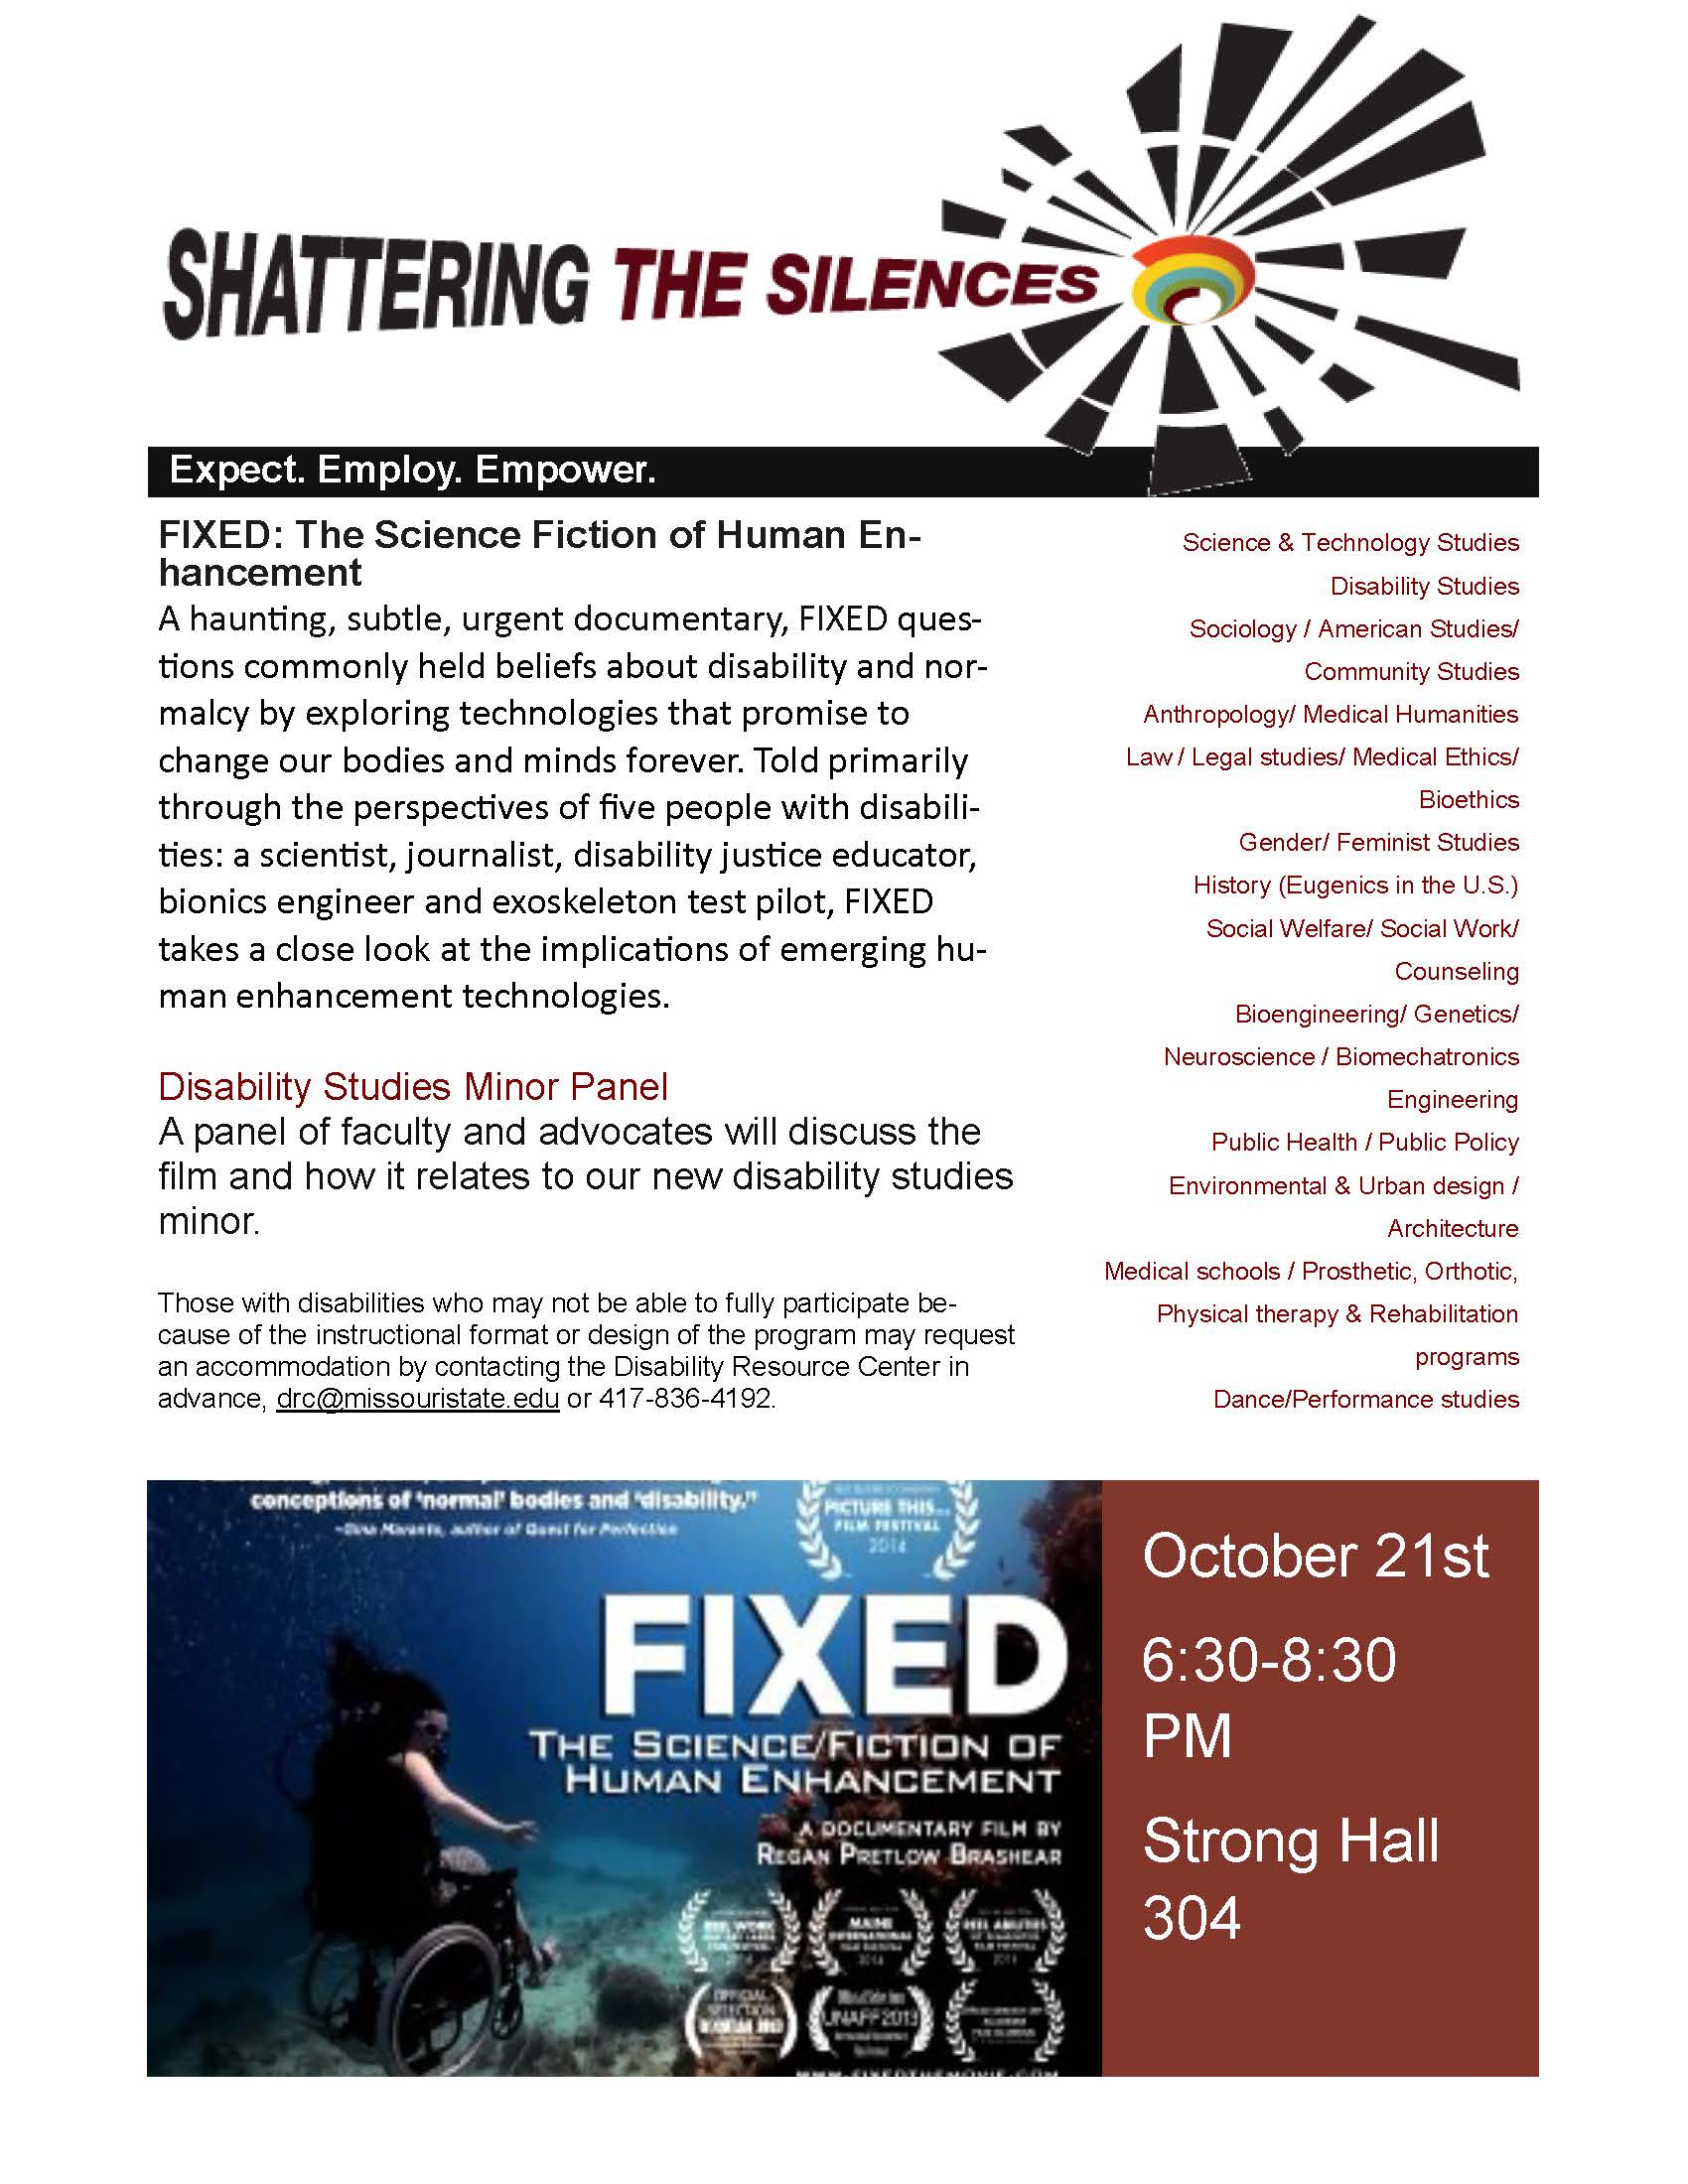 Panel Discussion: Fixed: The Science Fiction of Human Enhancement